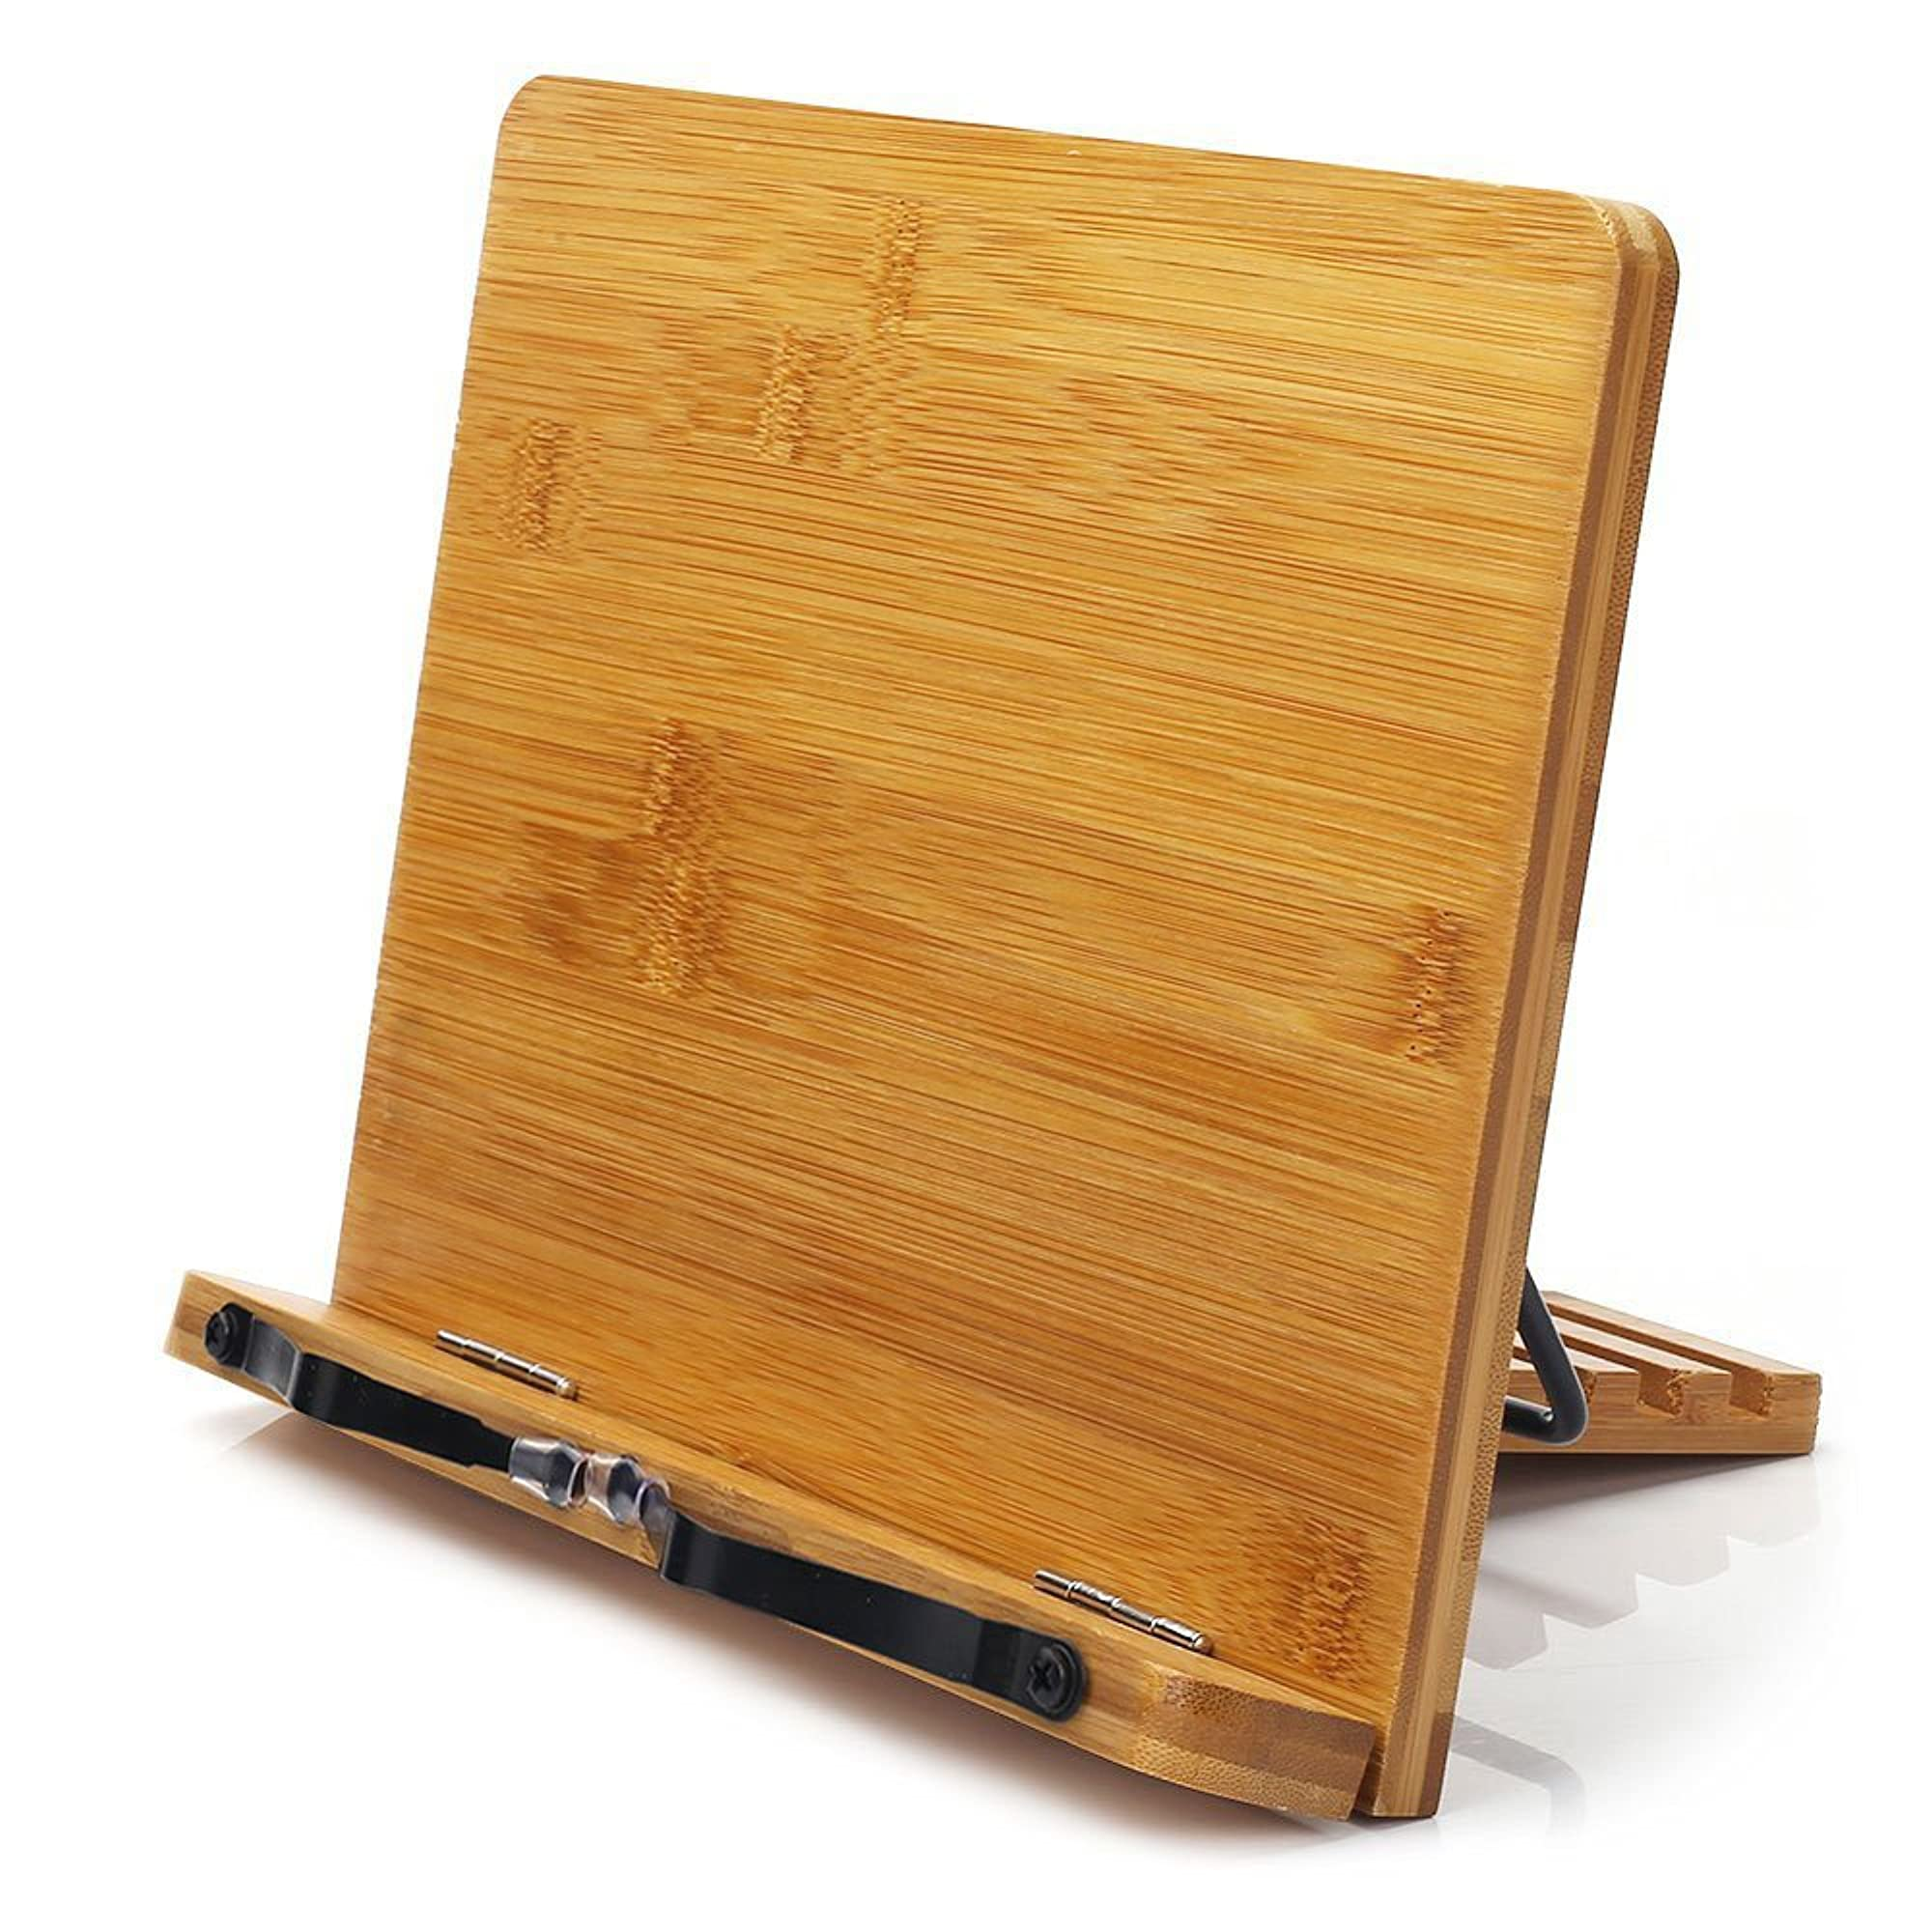 Wishacc Adjustable Bamboo Book Stand